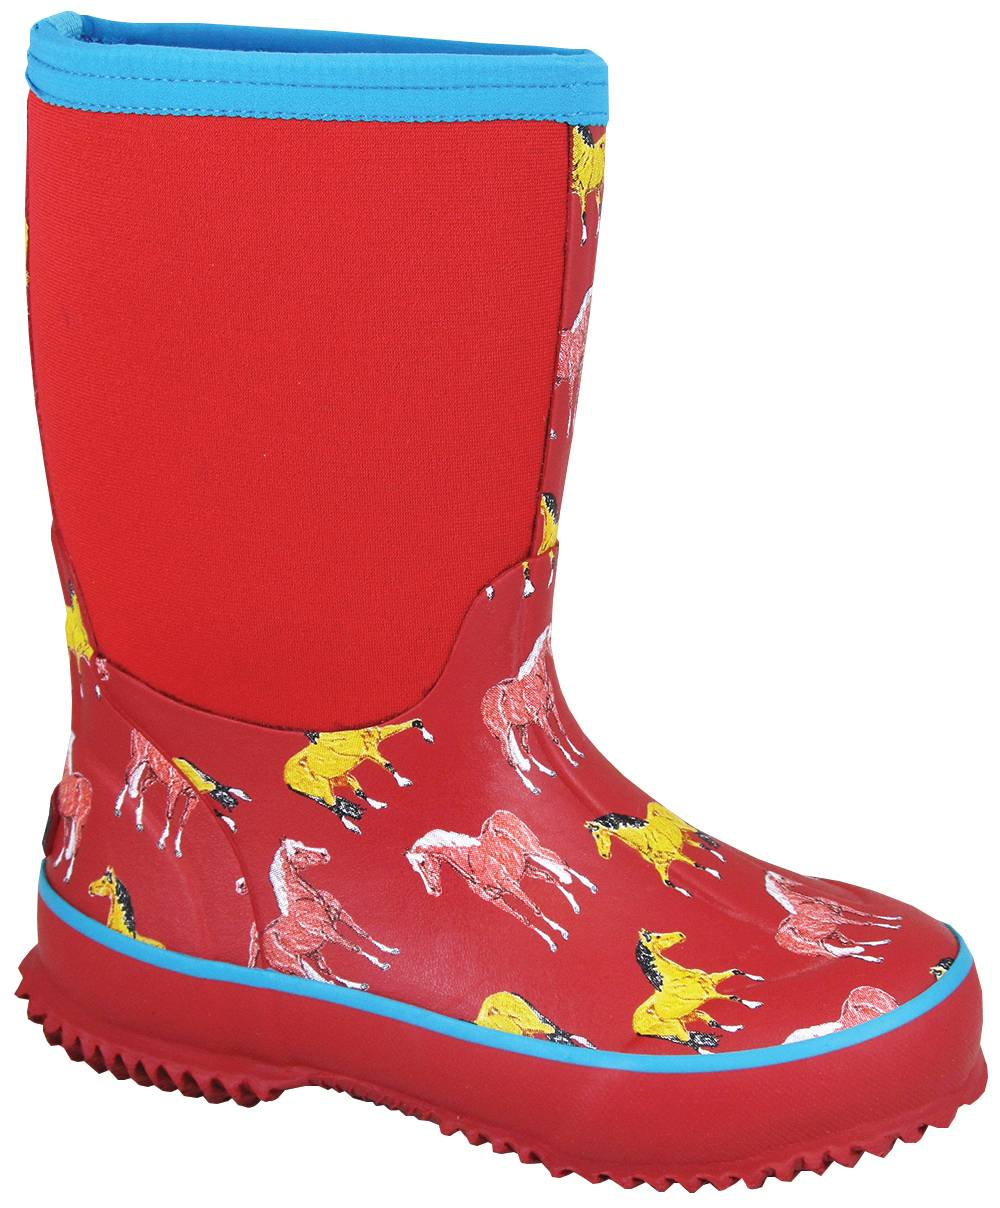 Smoky Mountain Youth Horsin Around Amphibian Boots